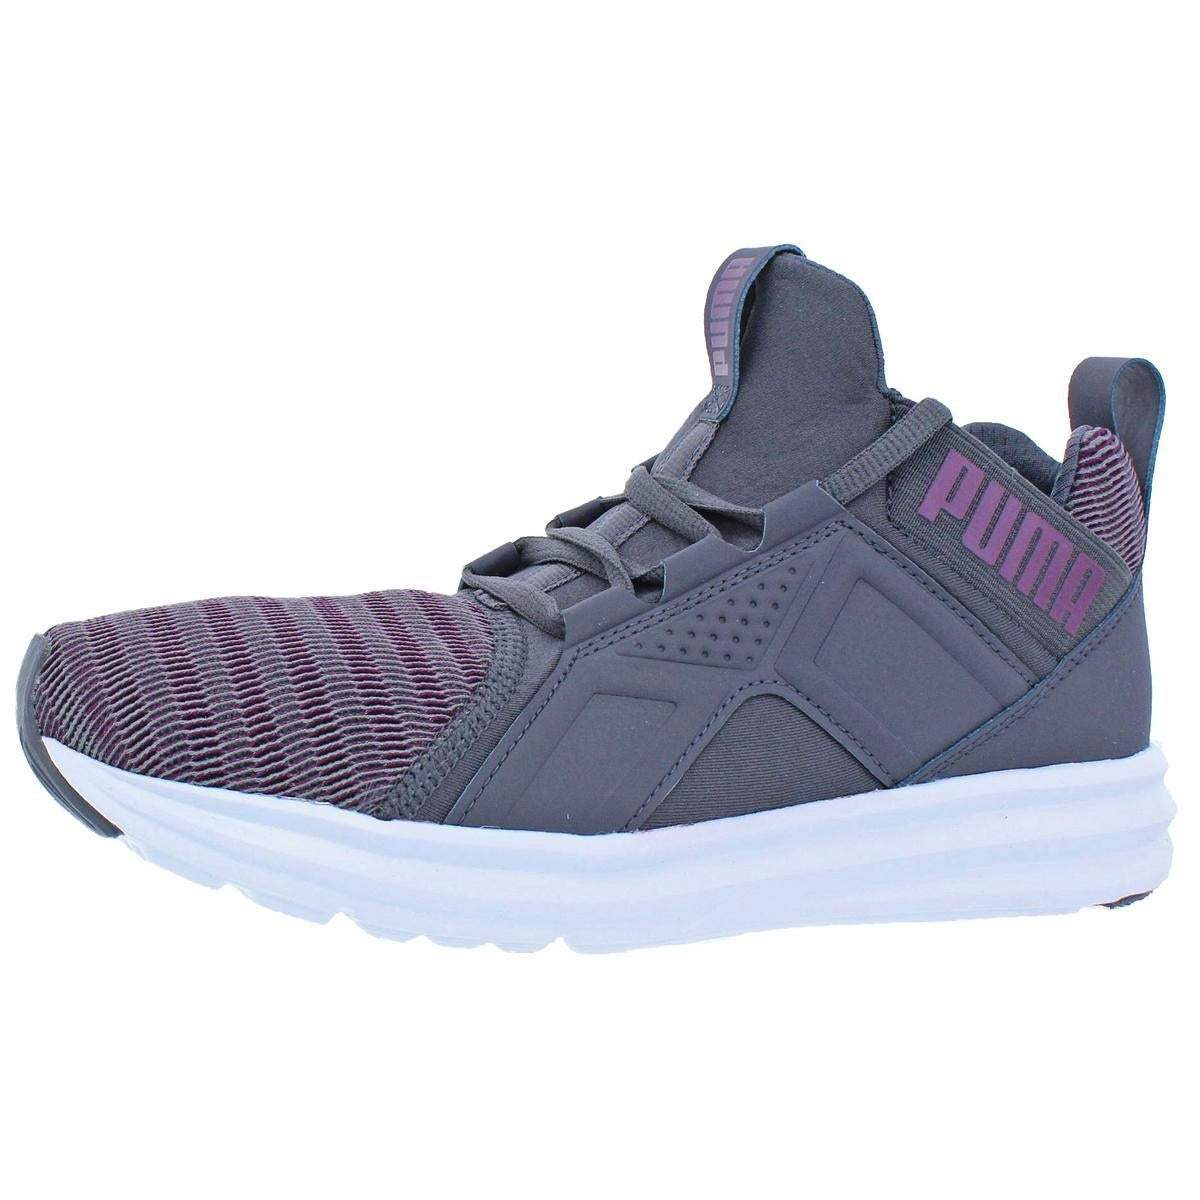 Shop Puma Womens Enzo High Top Sneakers Soft Foam Trainer